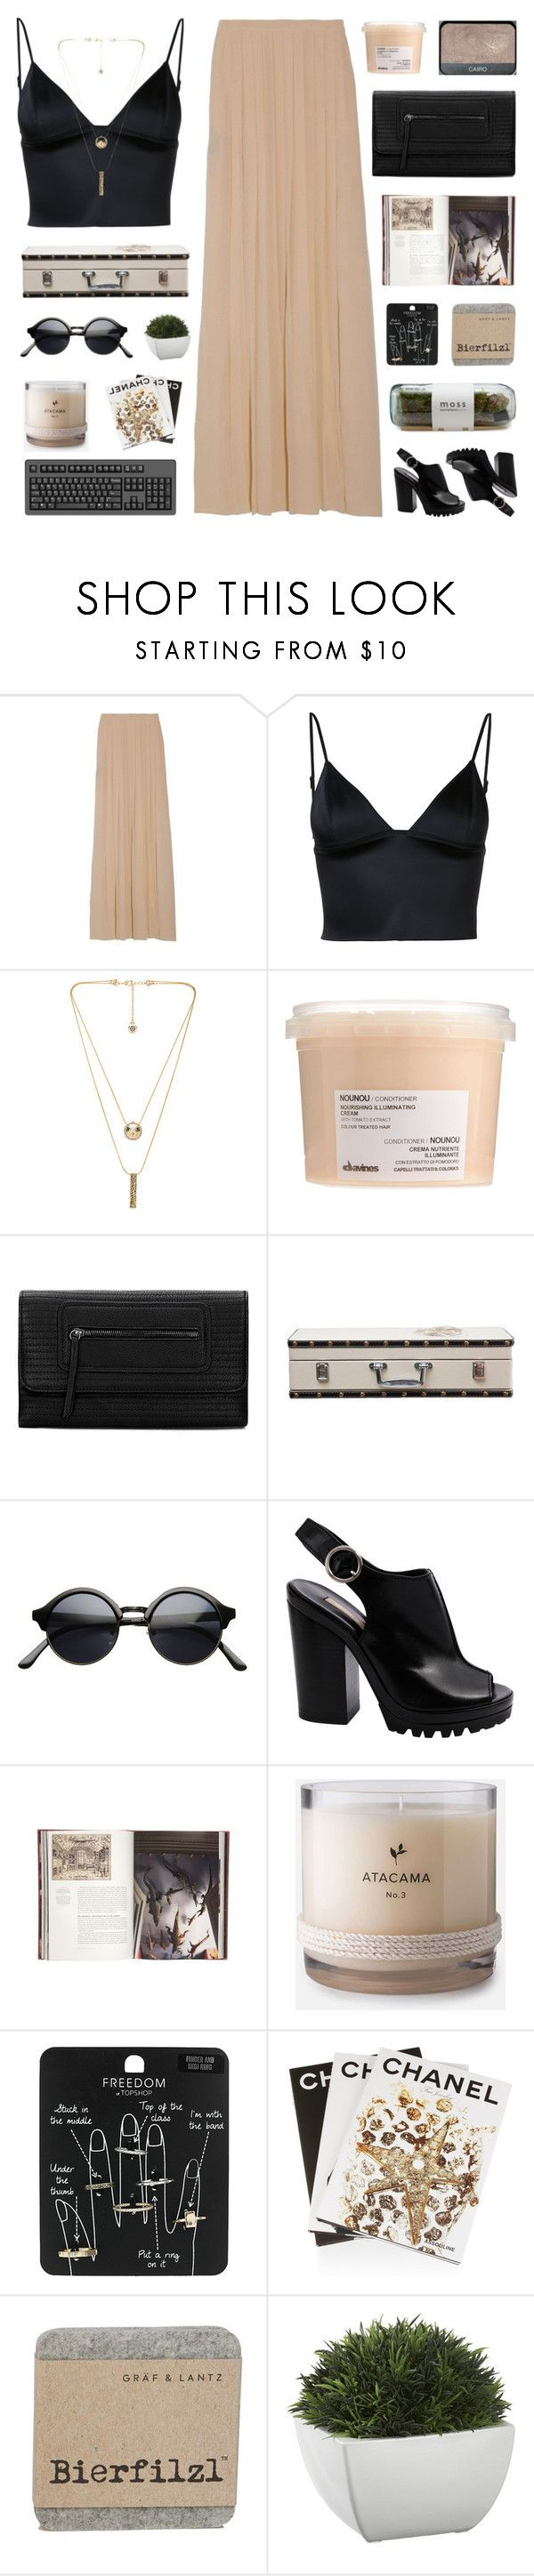 """LUXURY TRAVEL"" by emmas-fashion-diary ❤ liked on Polyvore featuring T By Alexander Wang, House of Harlow 1960, Davines, Design 55, Michael Kors, Jayson Home, Topshop, NARS Cosmetics, Assouline Publishing and Crate and Barrel"